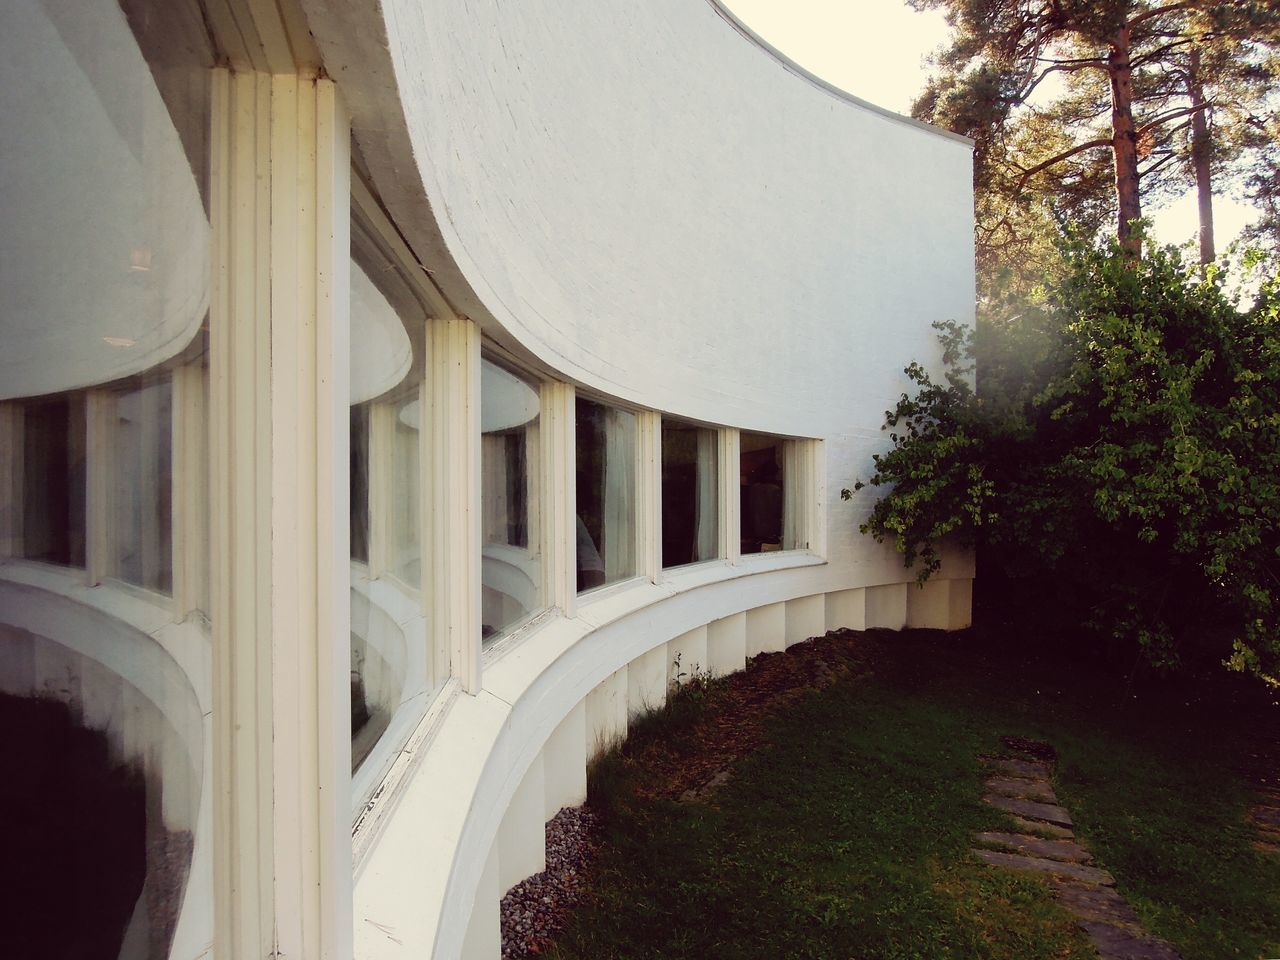 Alvar Aalto Alto Studio Helsinki Tiilimäki Munkkiniemi Finnland 1956 Architecture Built Structure Building Exterior Office Taverna The Architect - 2017 EyeEm Awards Architecture_collection Architecturelovers Architectureporn Architecturephotography